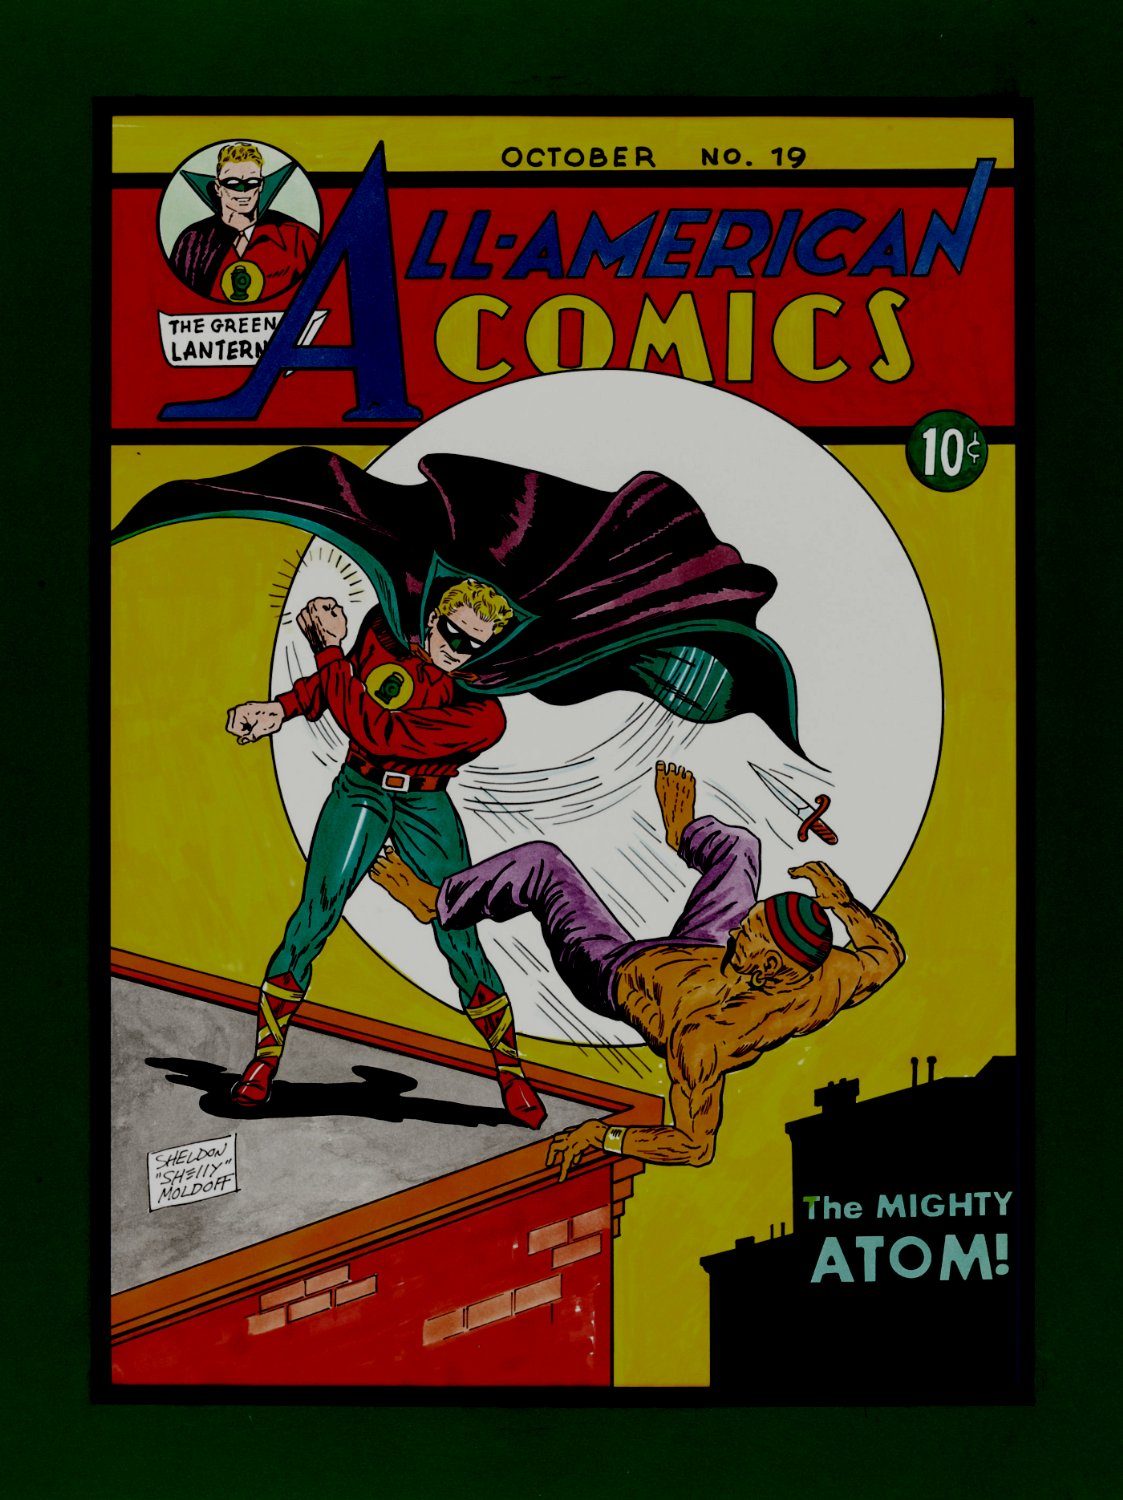 All-American Comics #19 Very Large Cover Re-Creation (1992)